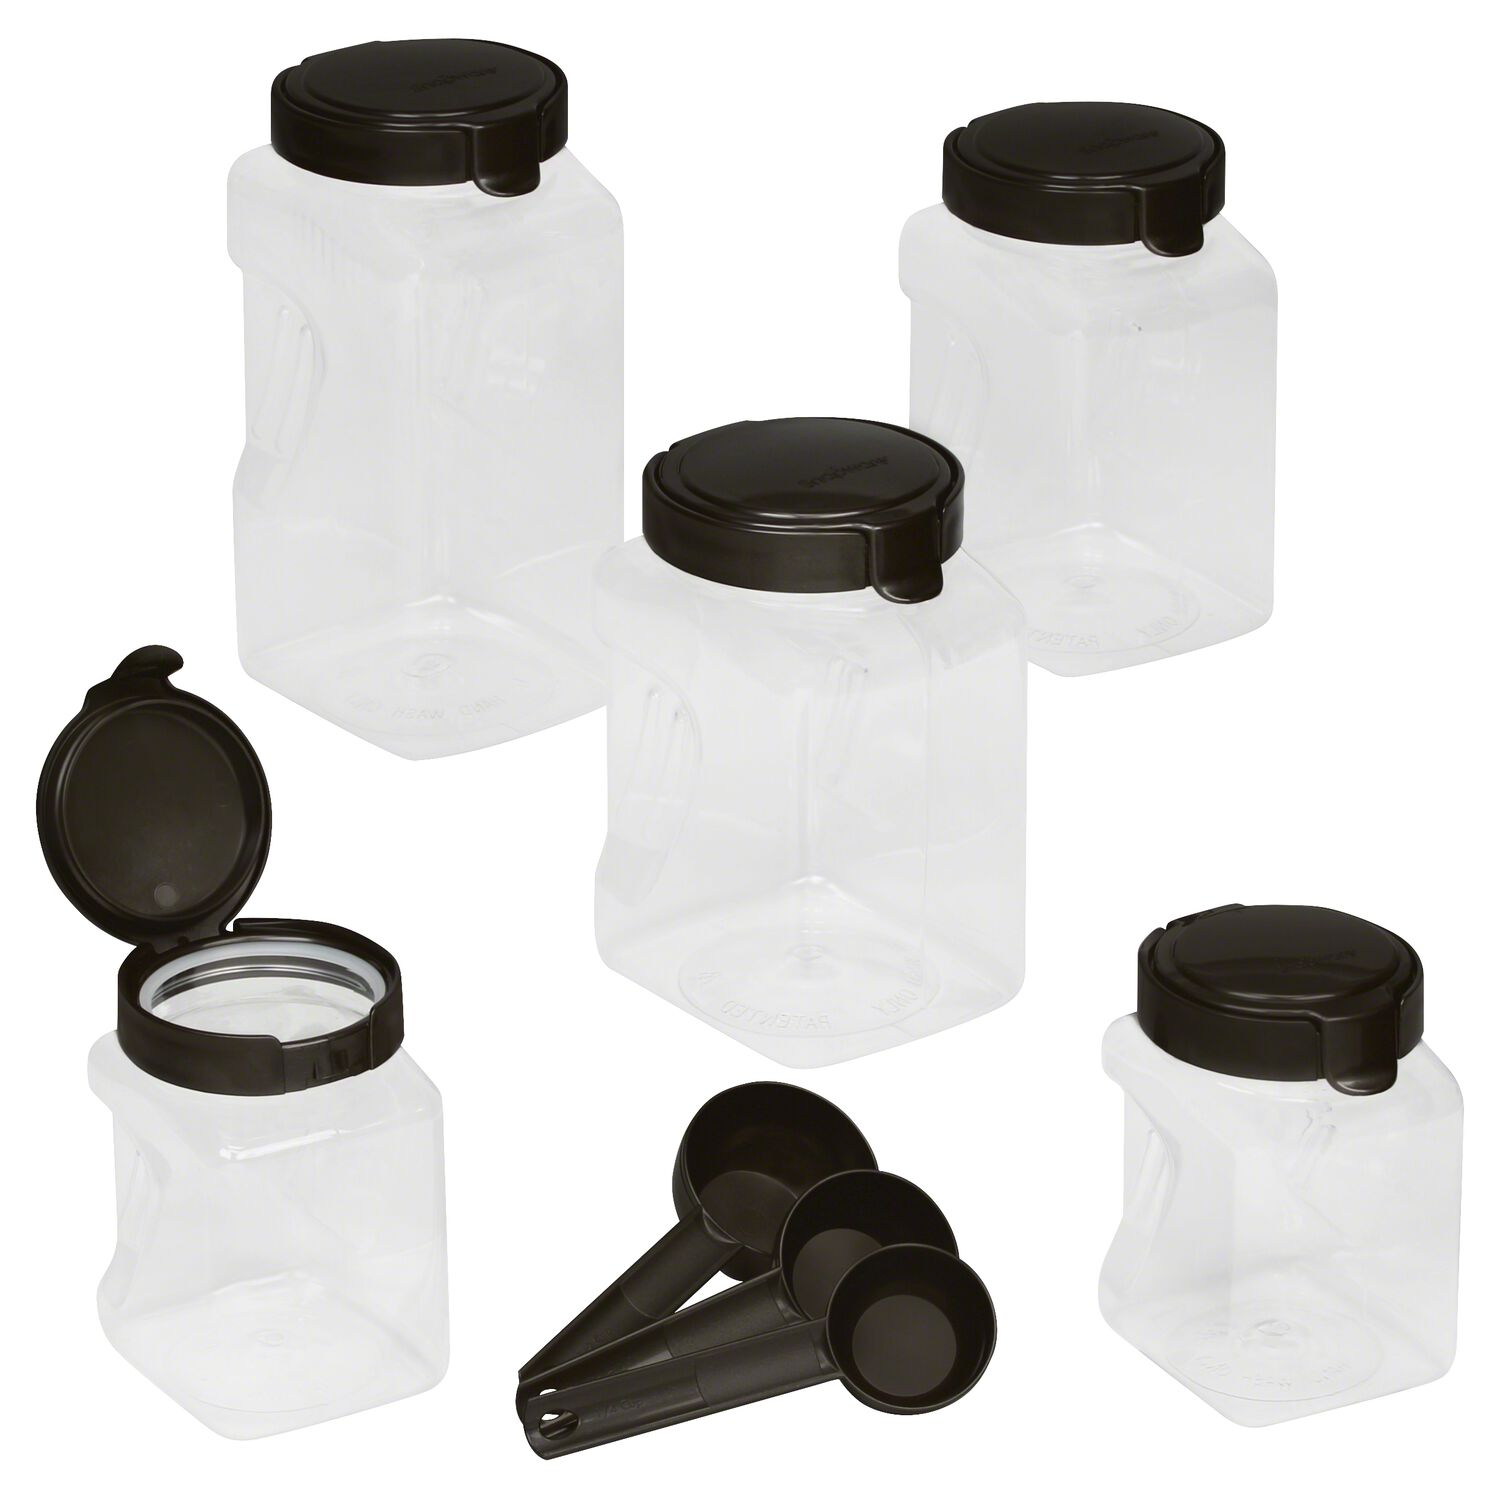 Snapware Airtight Food Storage 10-Pc Square Canister Set